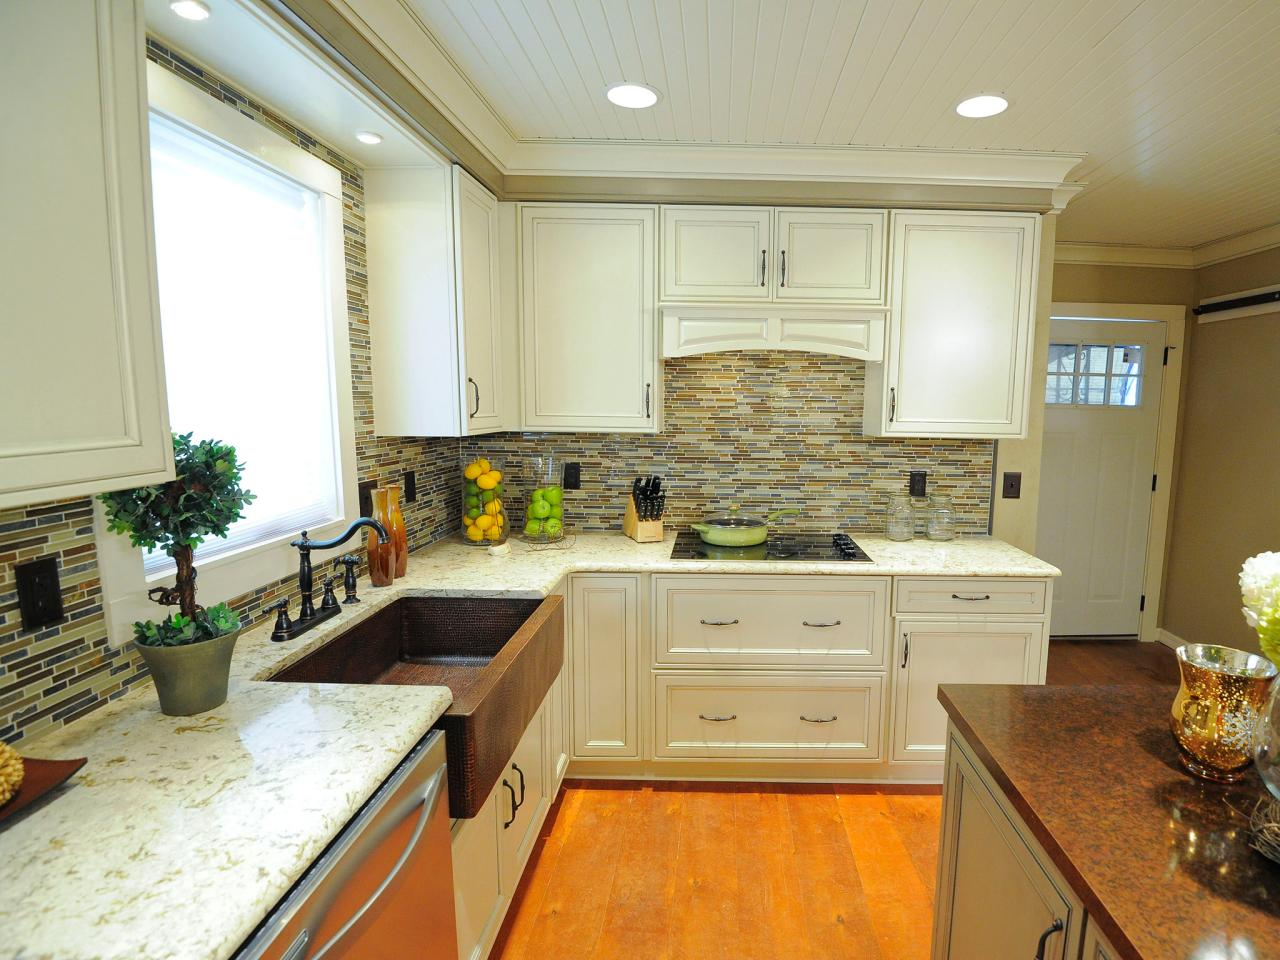 Kitchen Countertops: Beautiful, Functional Design Options Kitchen ...